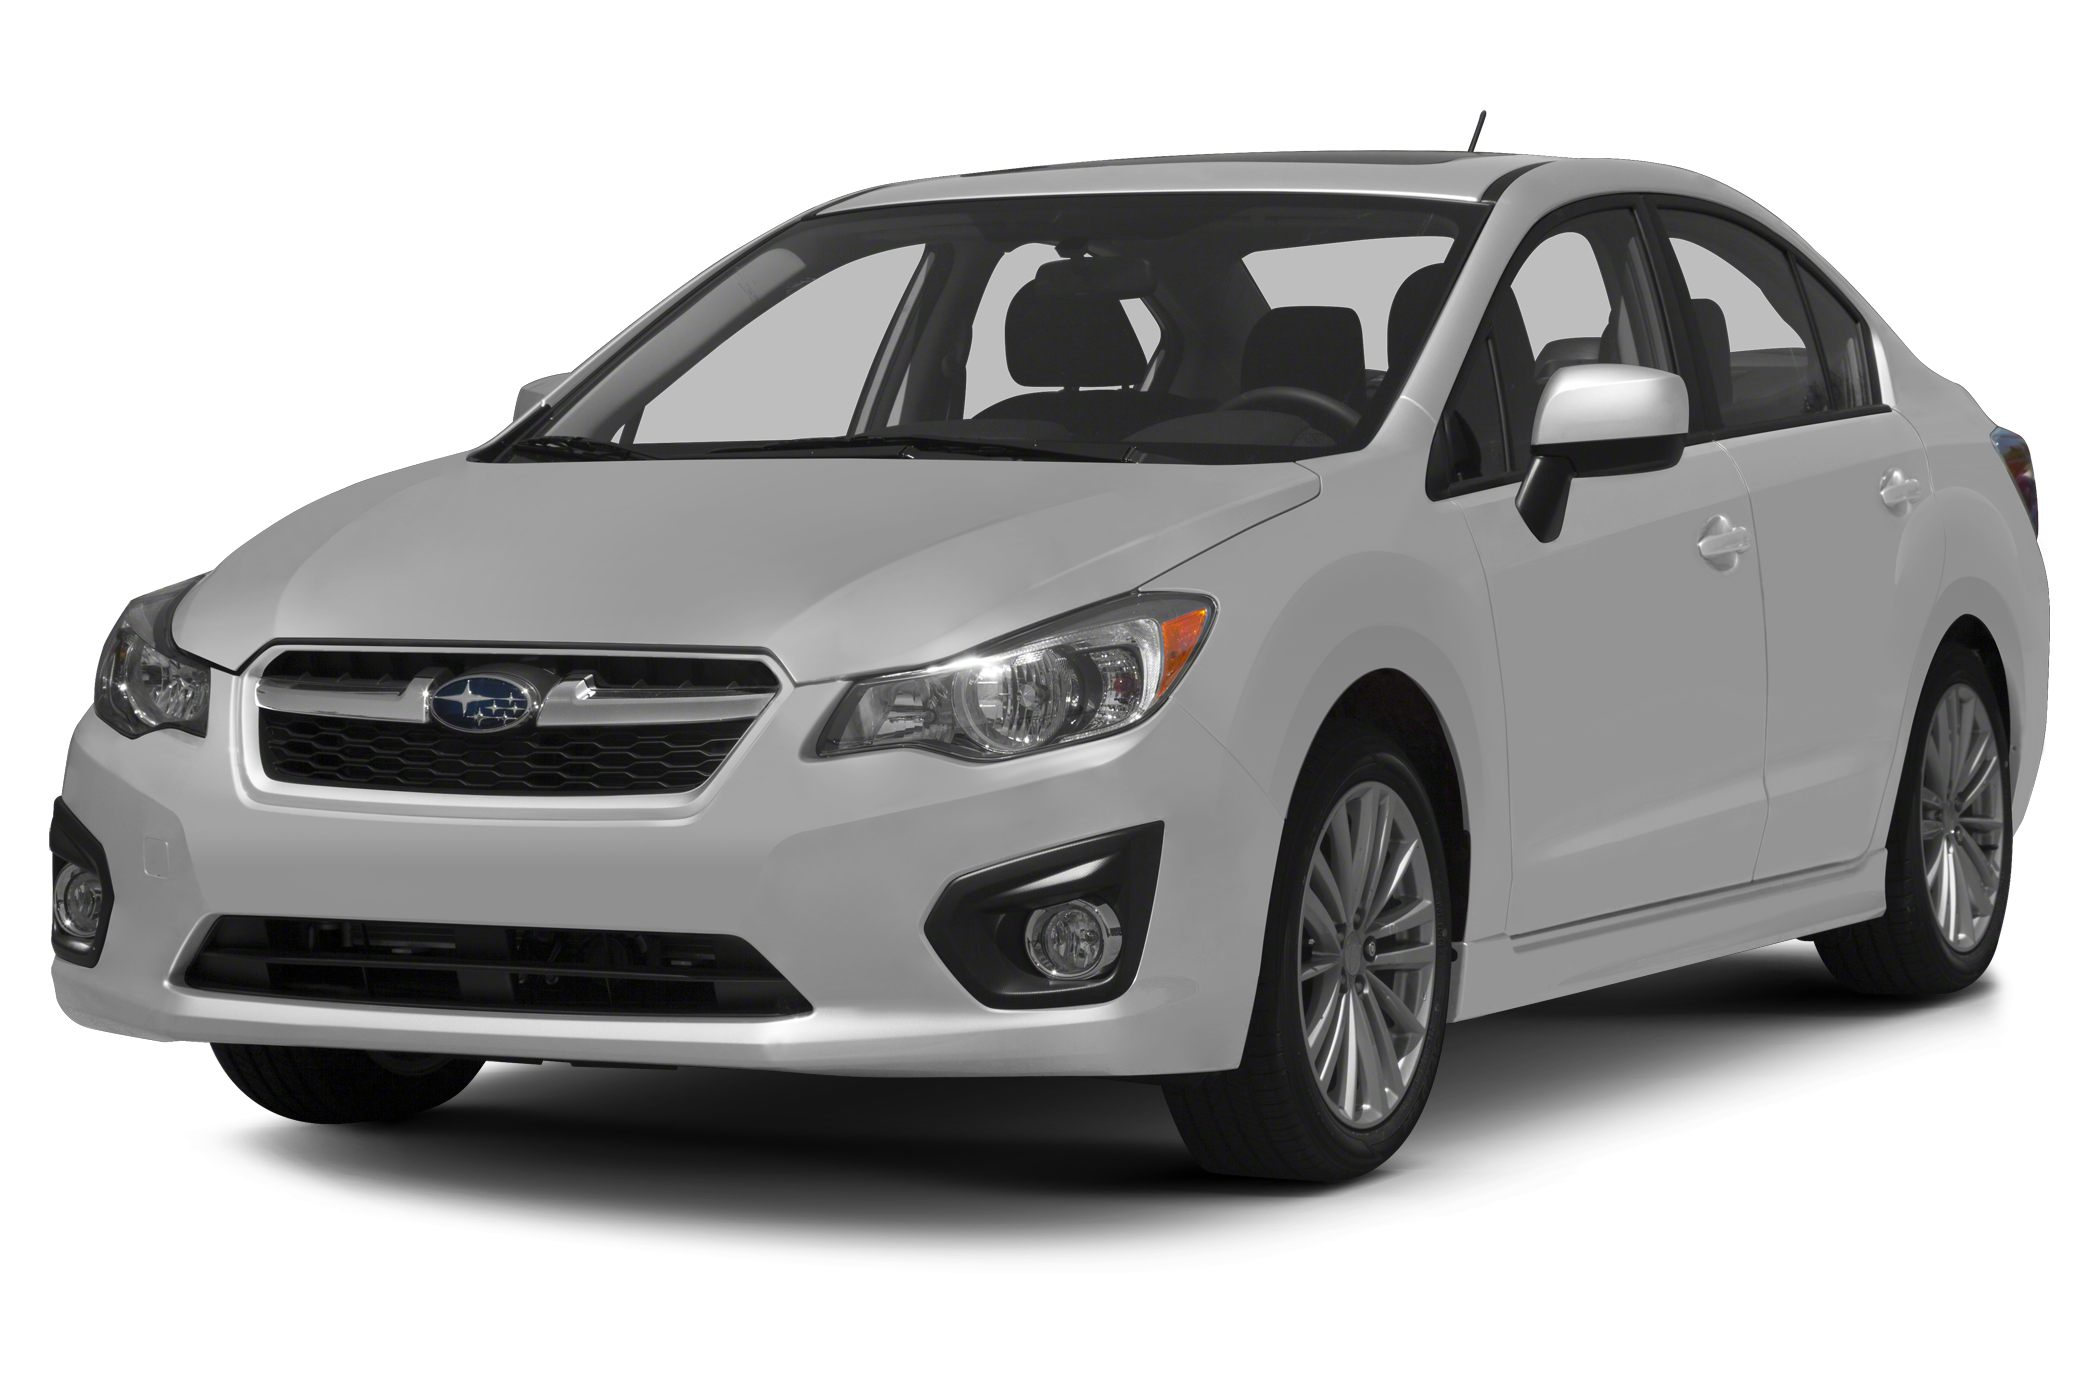 2013 Subaru Impreza 2.0i Hatchback for sale in Puyallup for $18,211 with 37,601 miles.